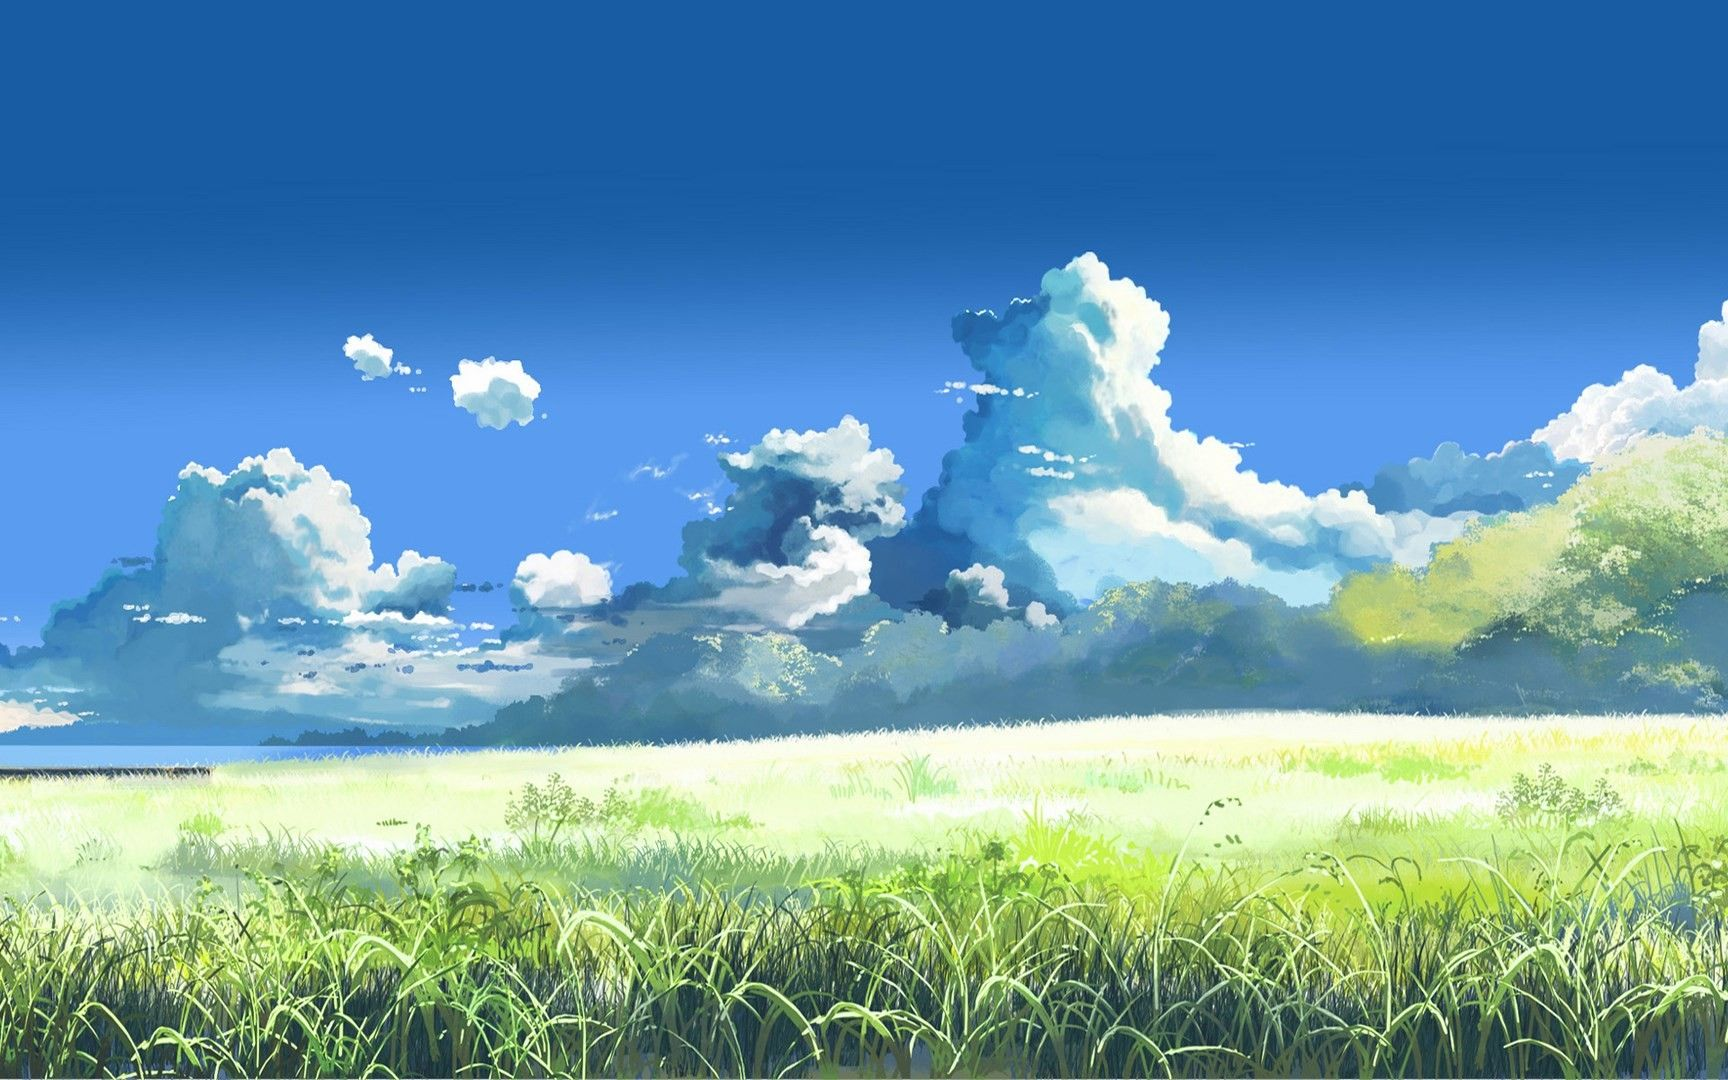 Clouds Lake Forest Grass Wallpaper No 36701 Anime Scenery Scenery Wallpaper Anime Scenery Wallpaper